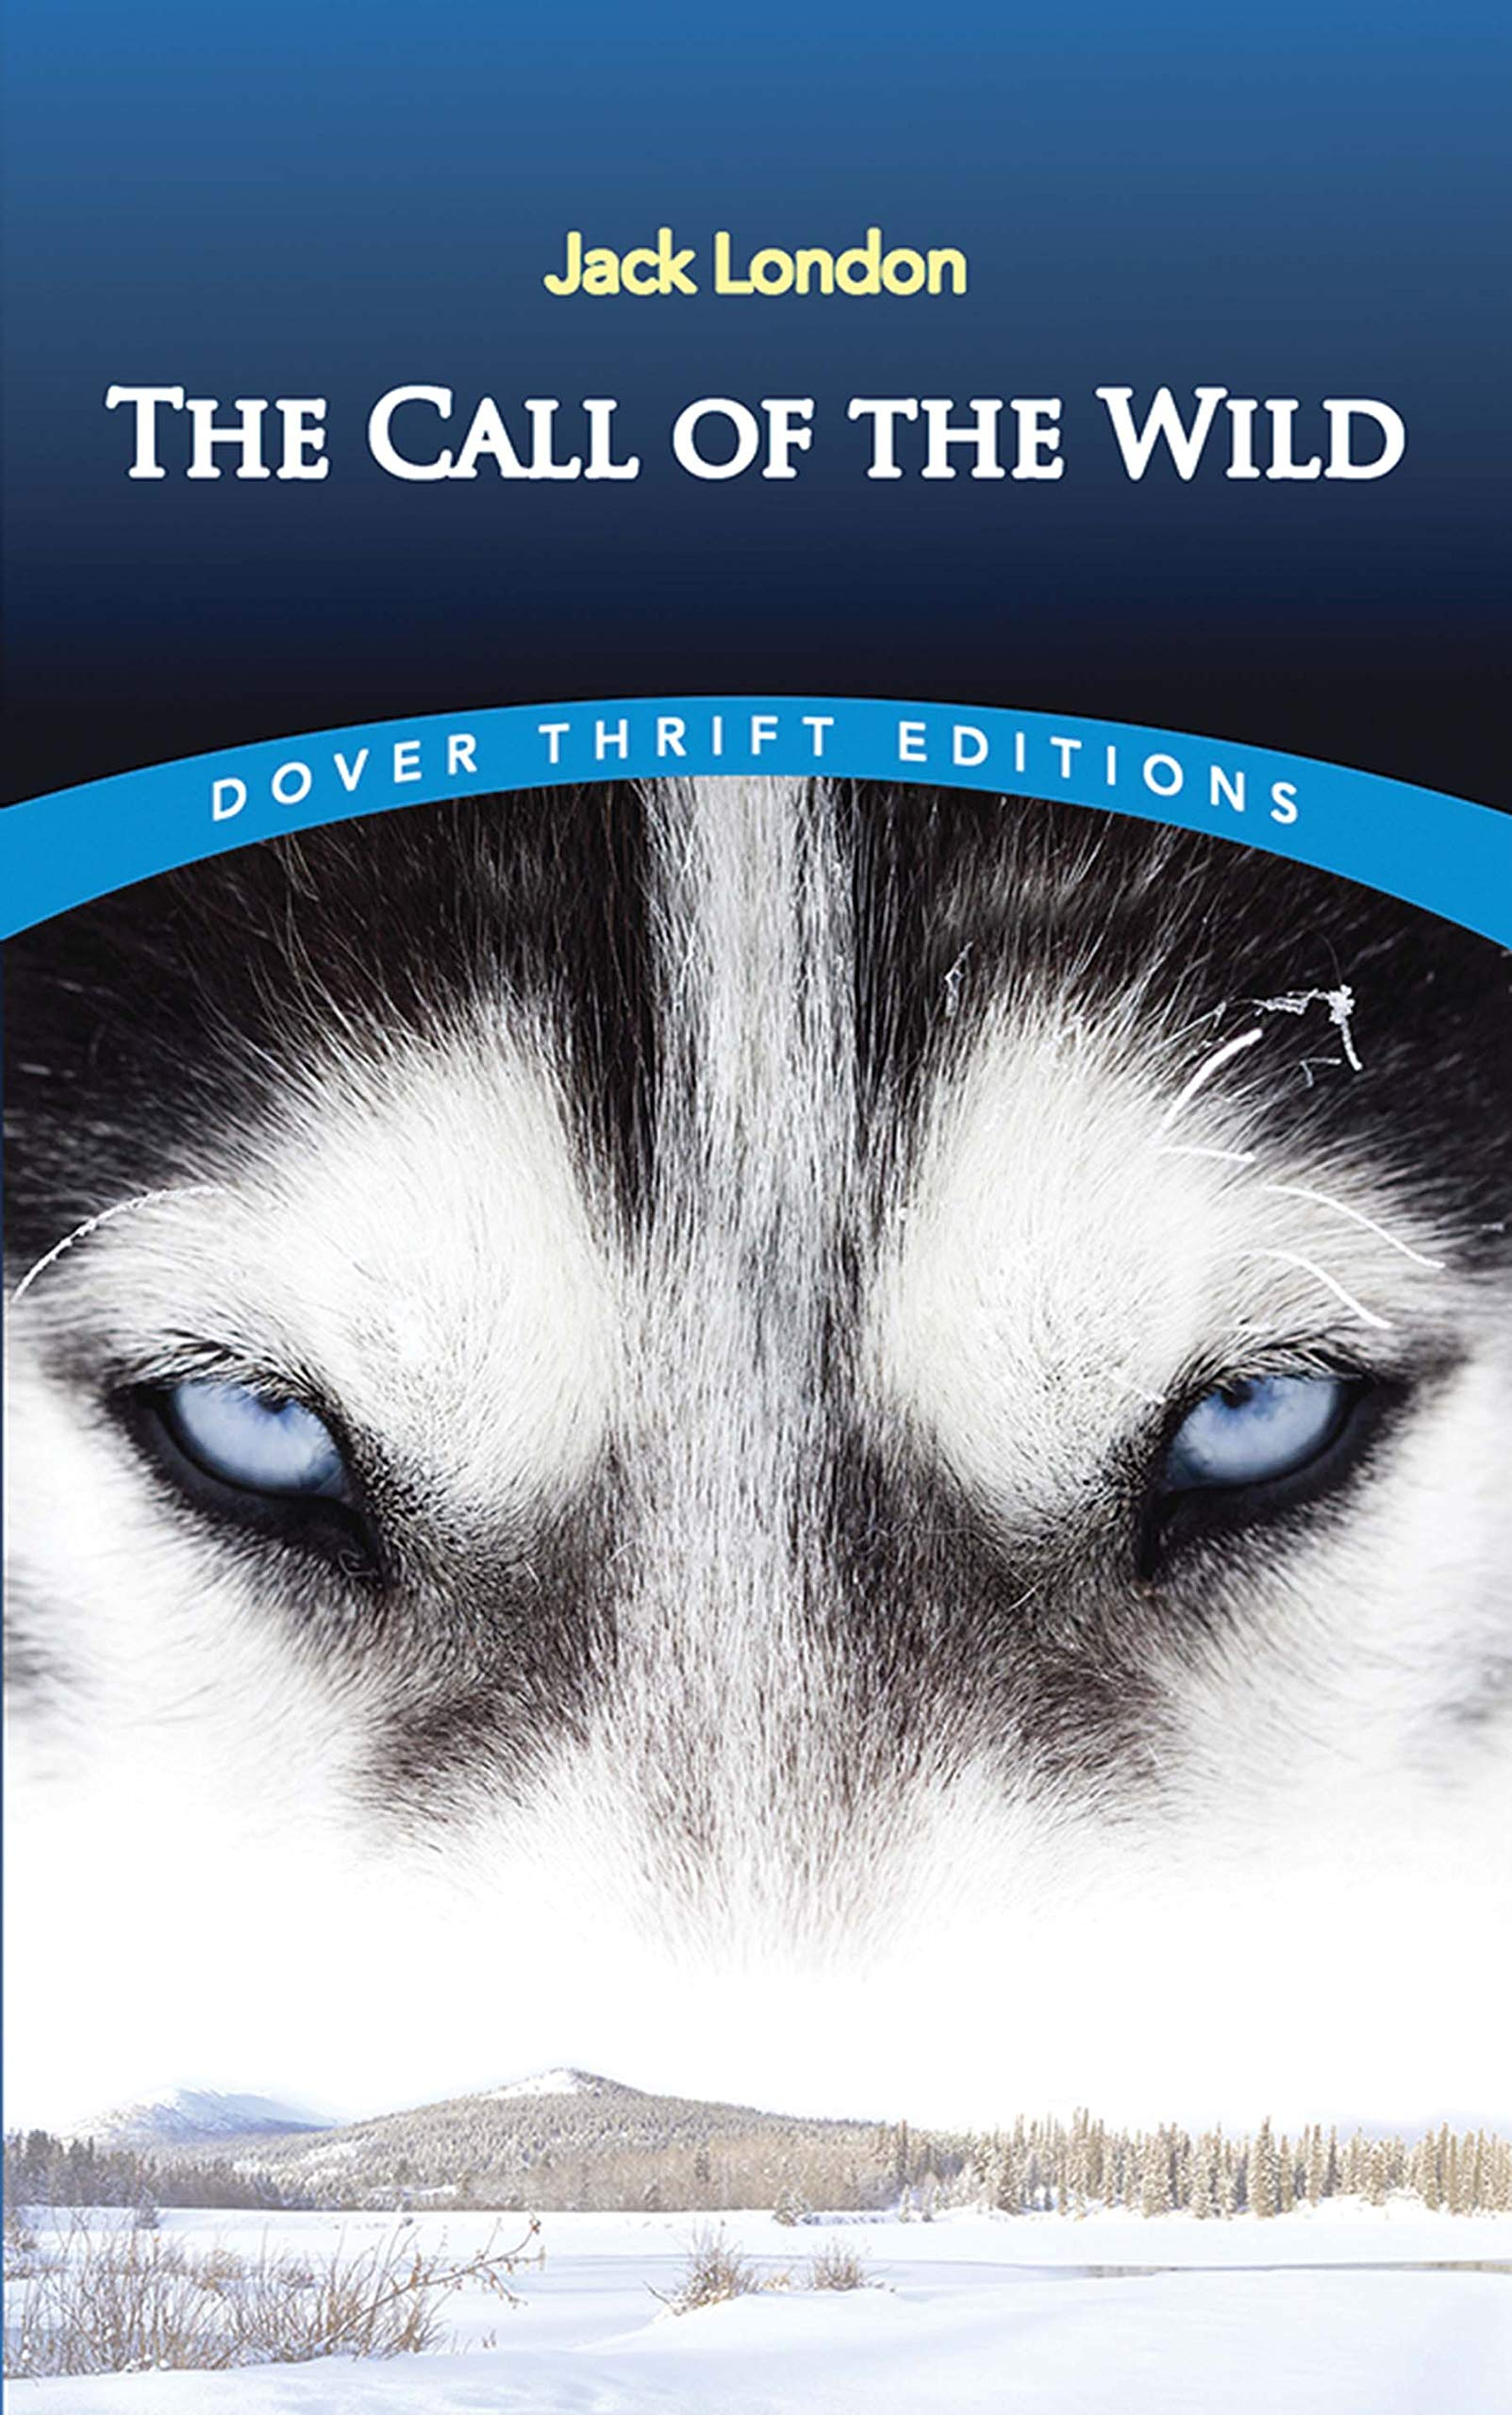 The Call of the Wild: Jack London: 8580001049755: Amazon.com: Books